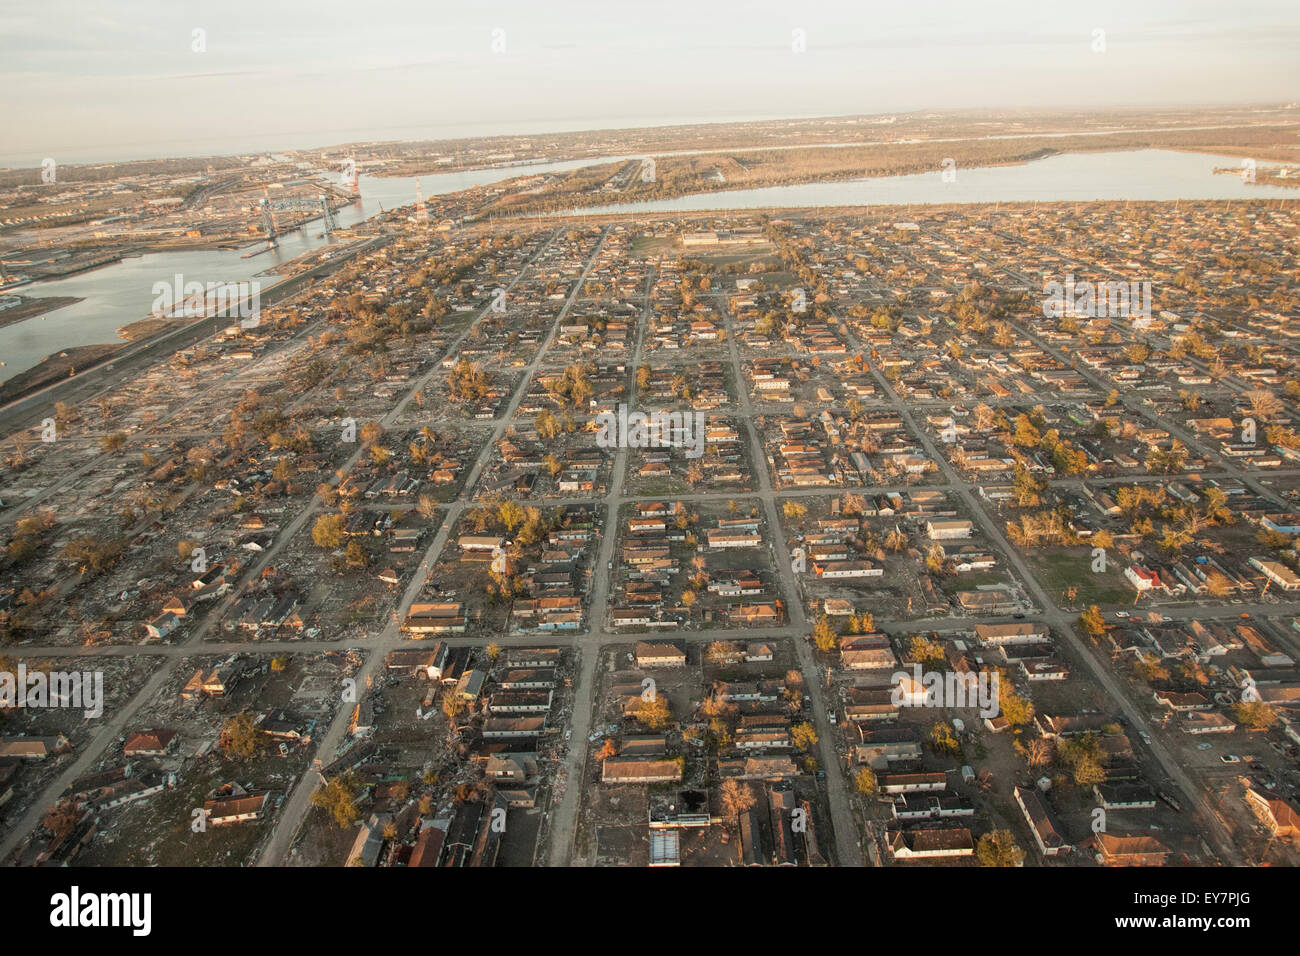 Aerial View Of Aftermath Of Hurricane Katrina In New ...